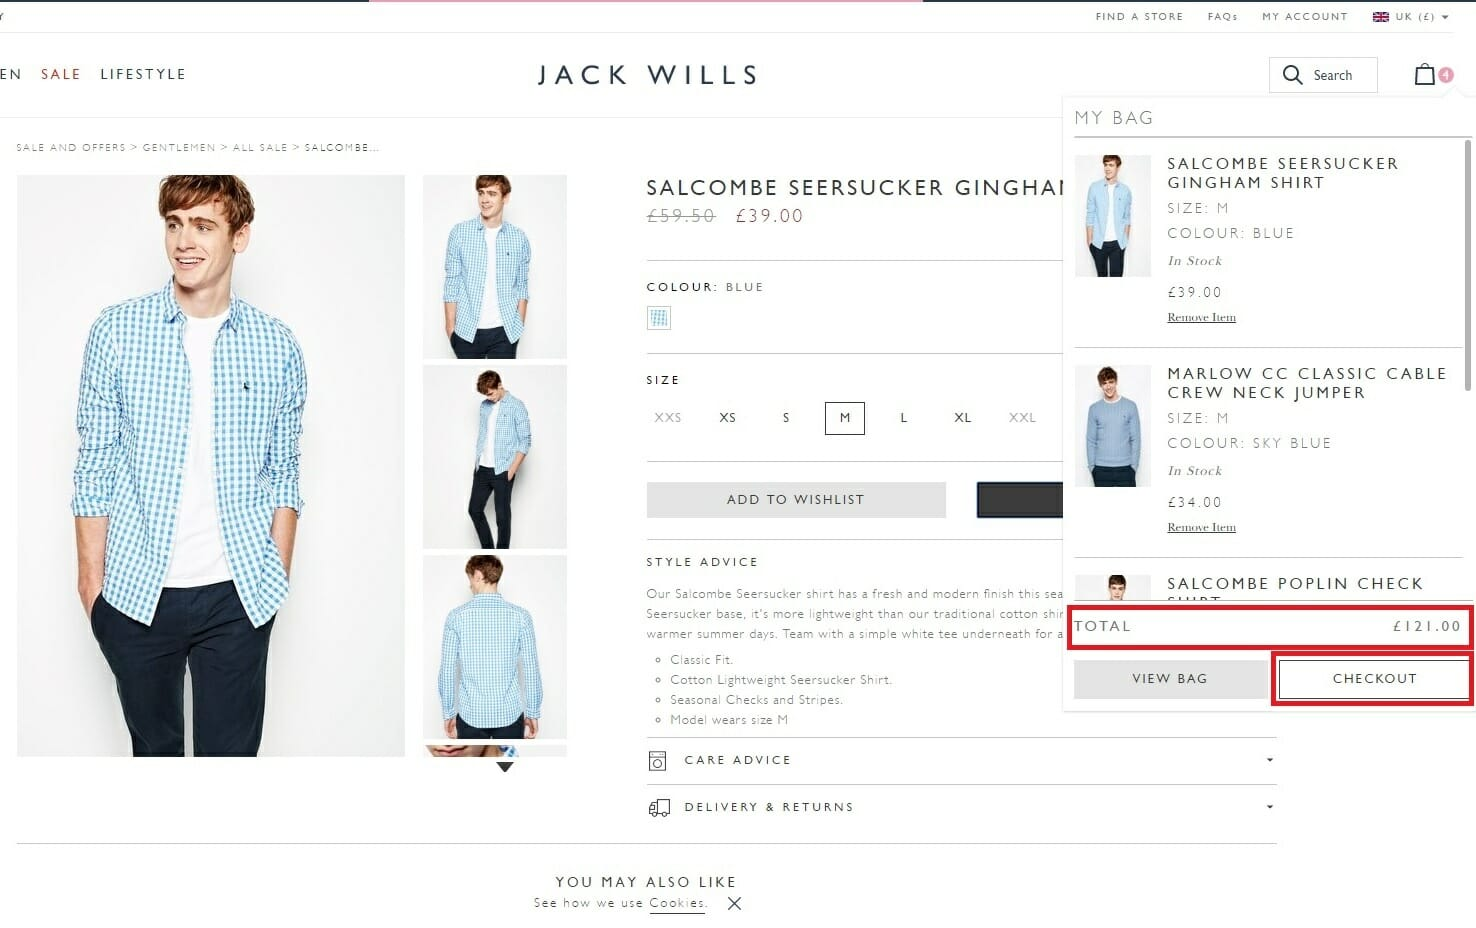 Jack_Wills_ecommerce_checkout_process.jpeg